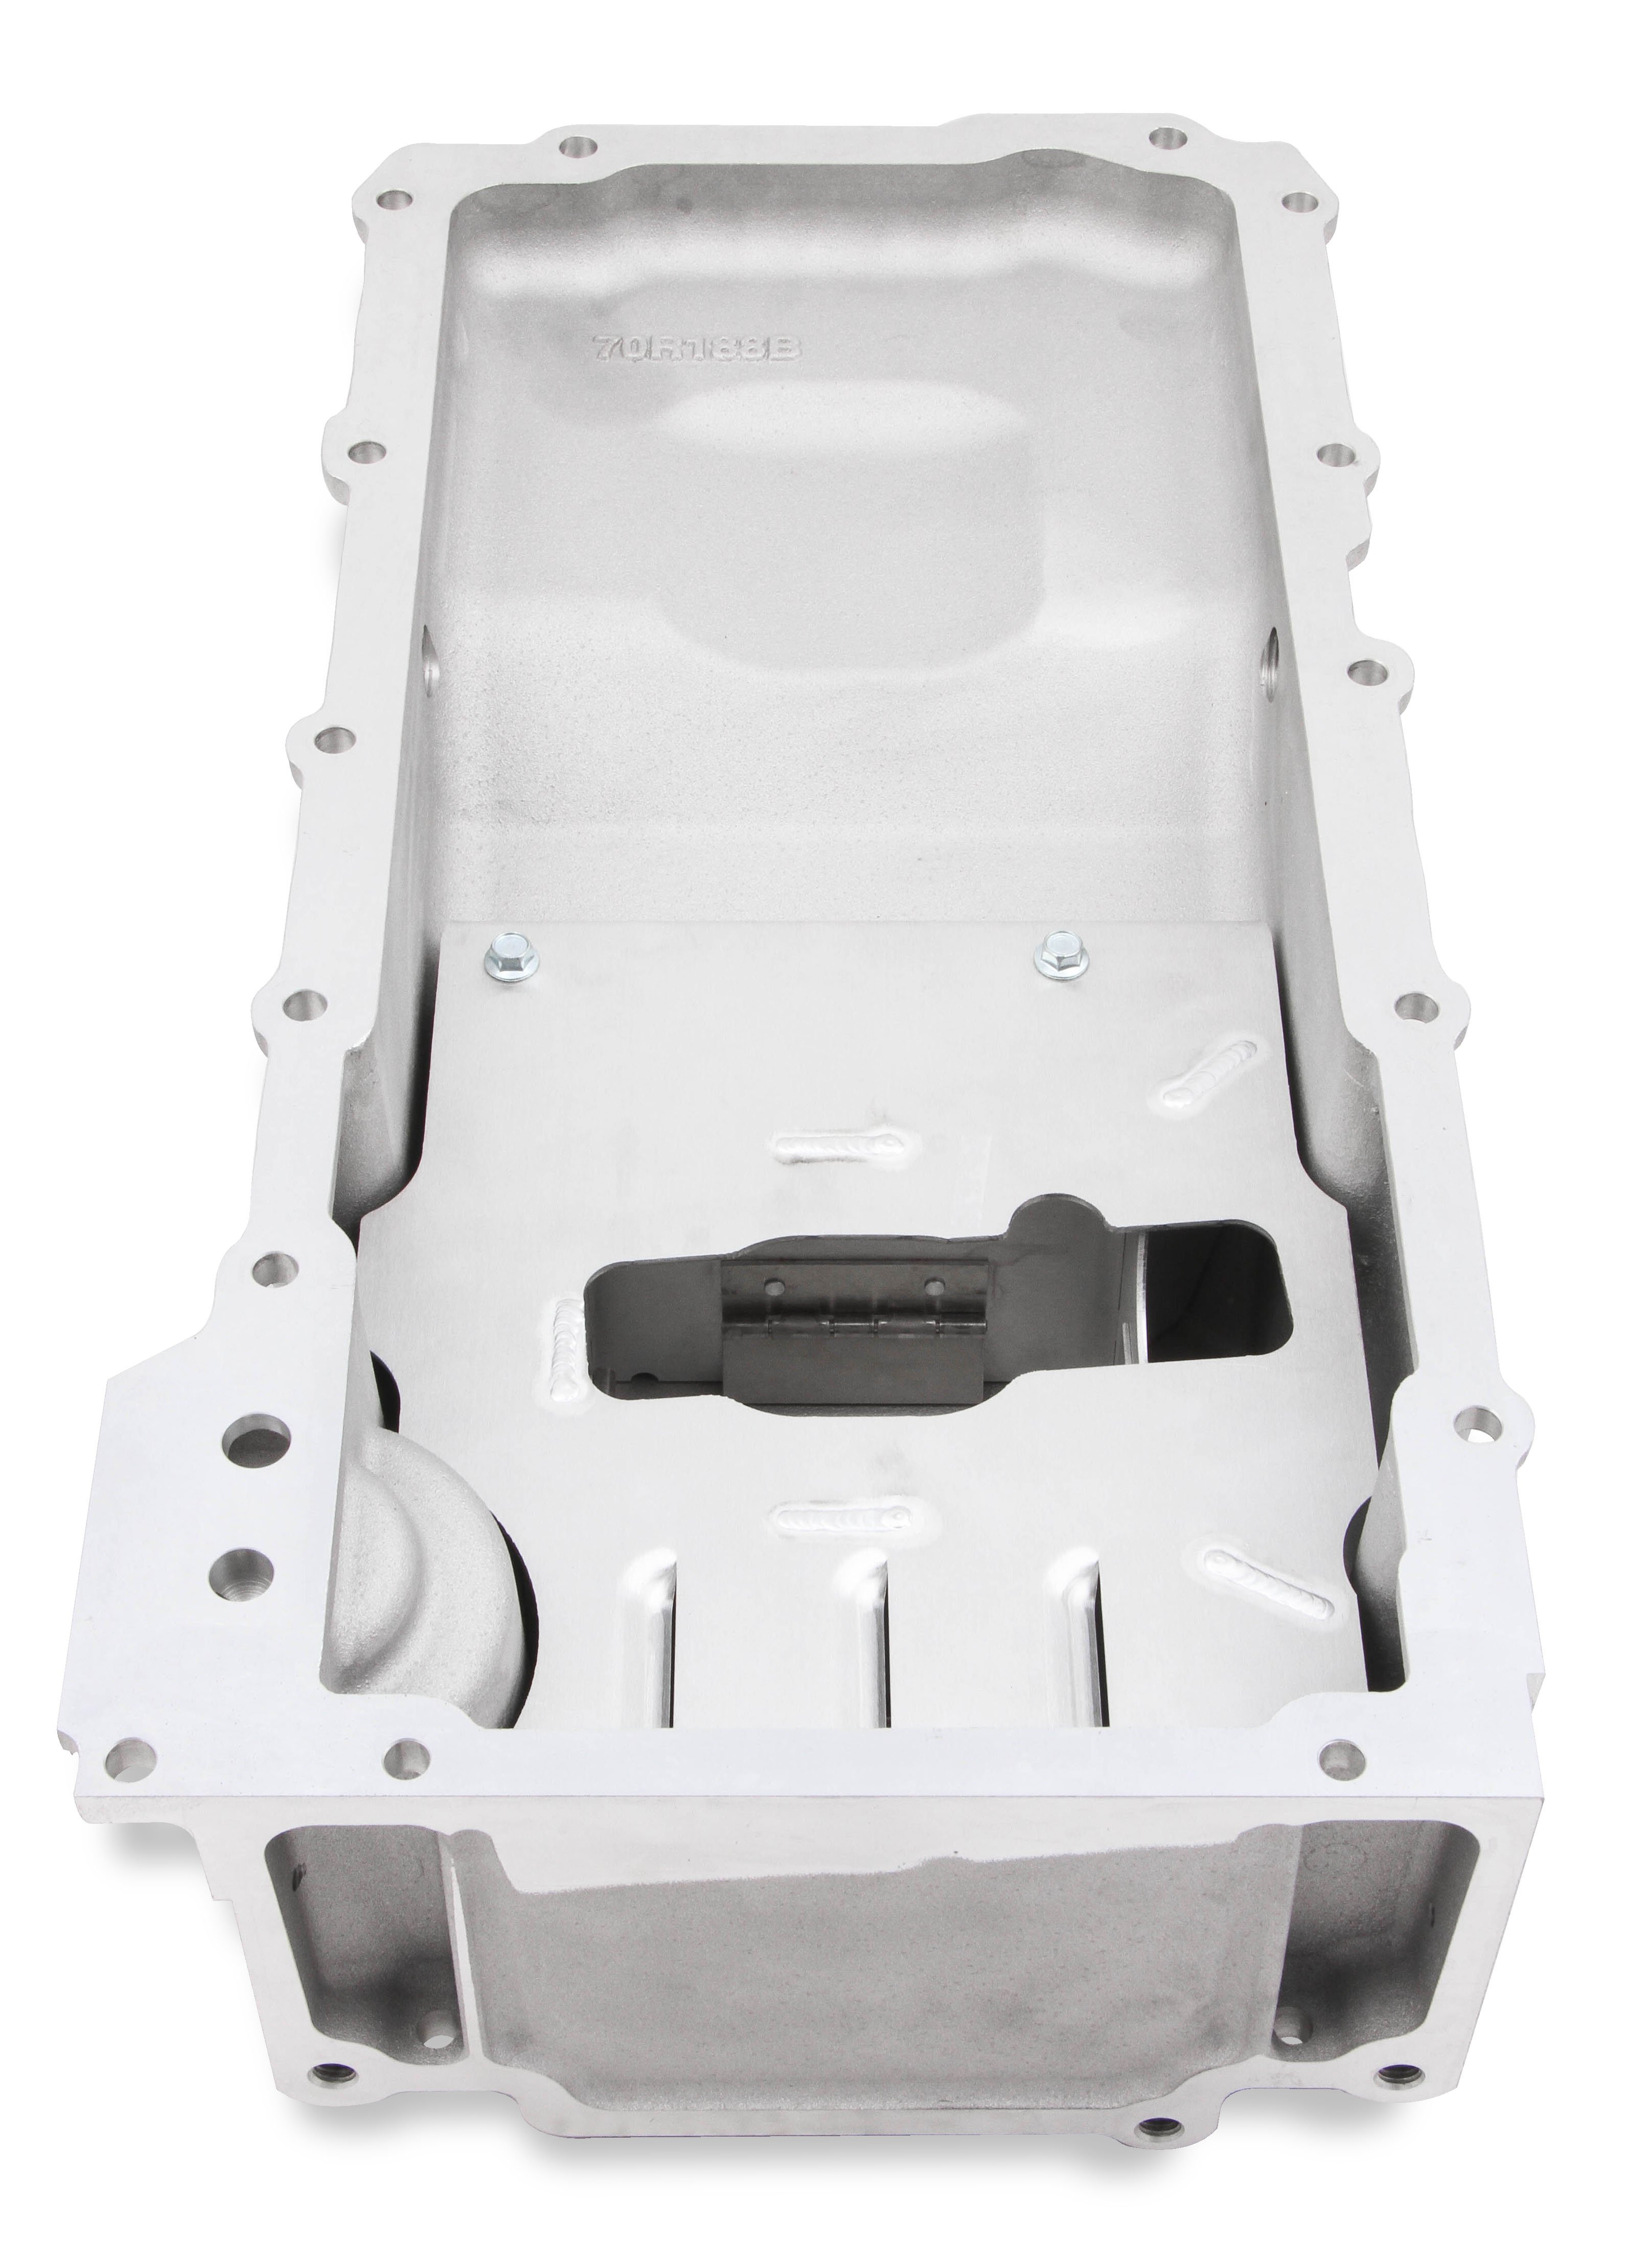 Holley 302 12 Gm Ls Retro Fit Oil Pan Baffle Kit